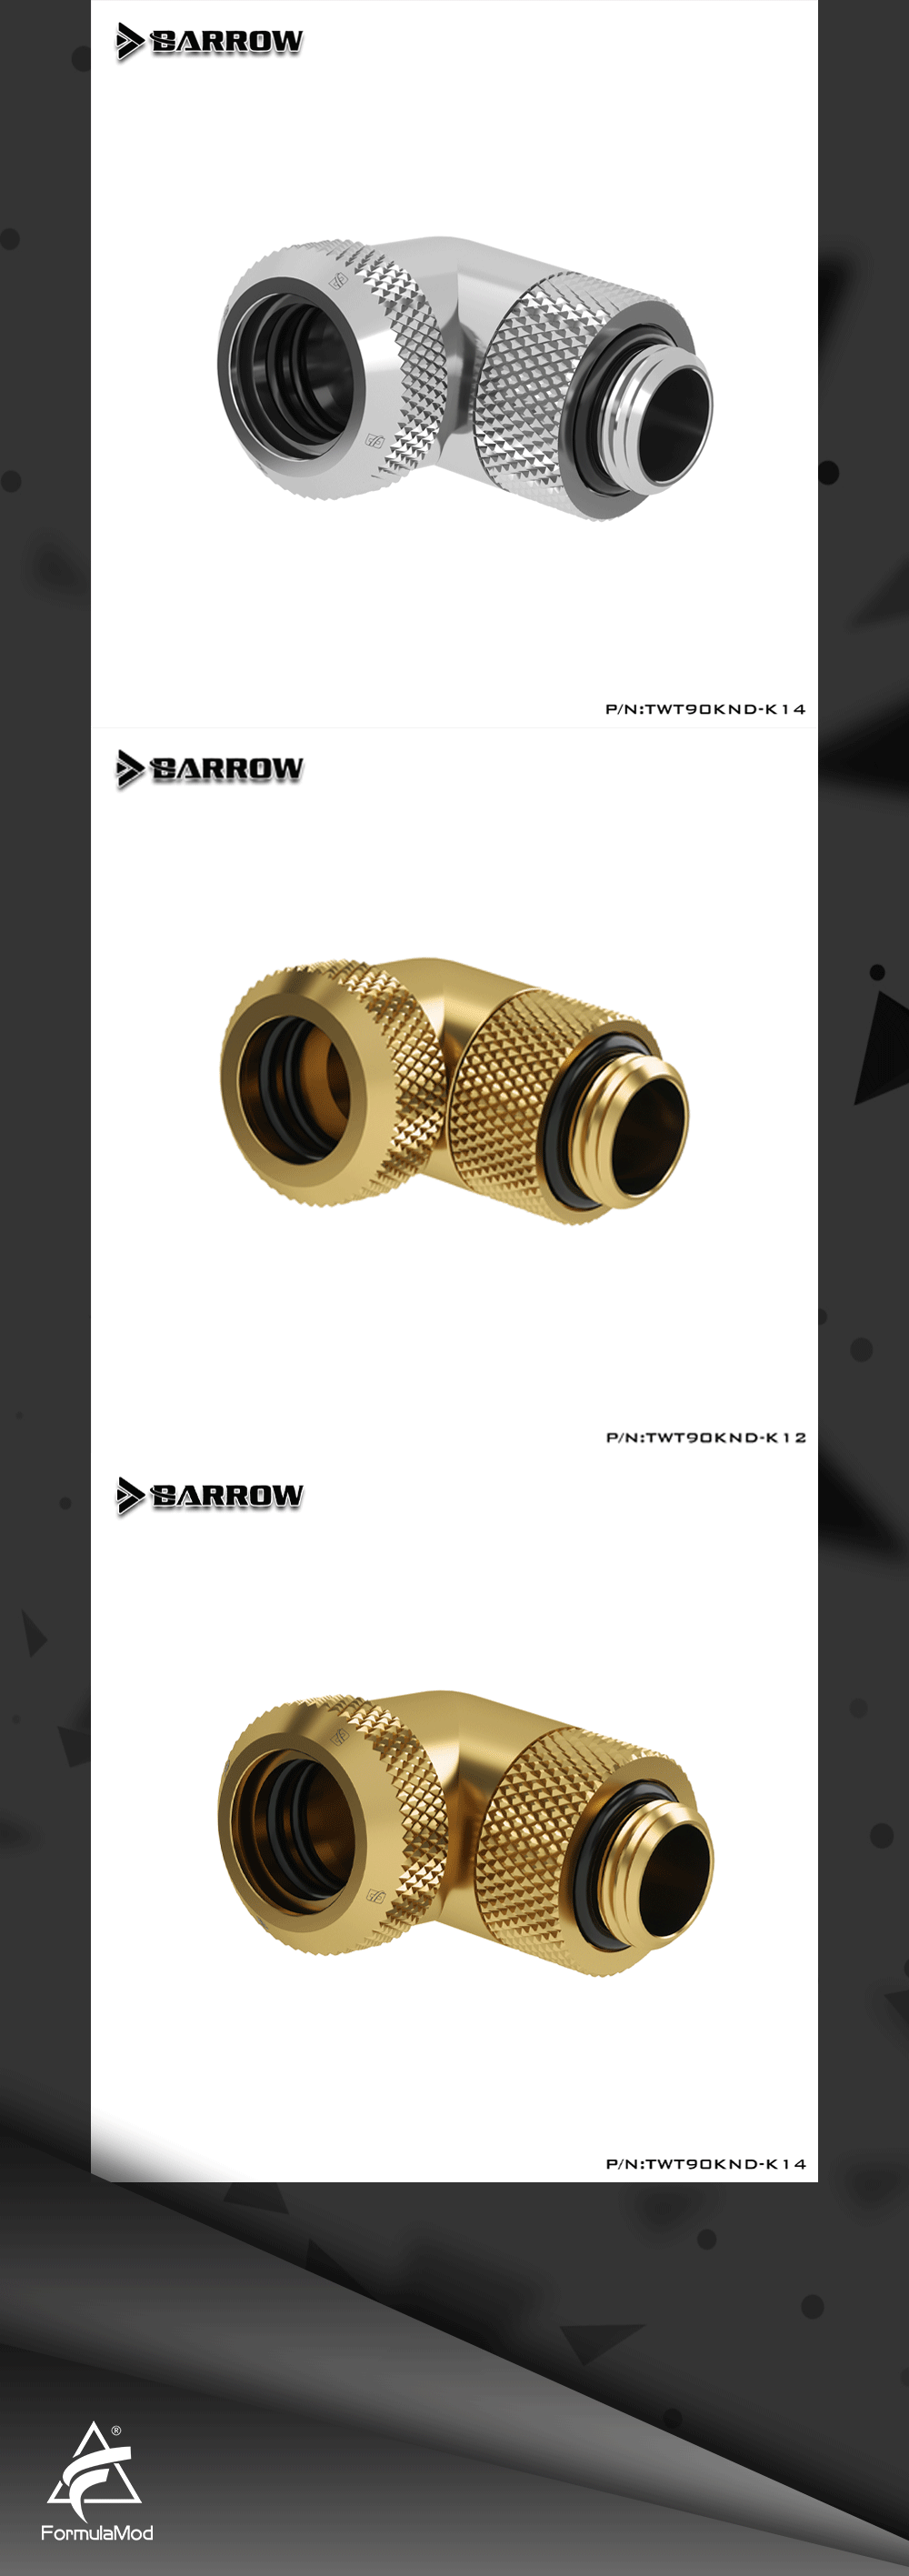 Barrow TWT90KND-K12/TWT90KND-K14, 90 Degree Rotary Hard Tube Fittings, G1/4 Adapters For OD12mm/14mm Hard Tubes